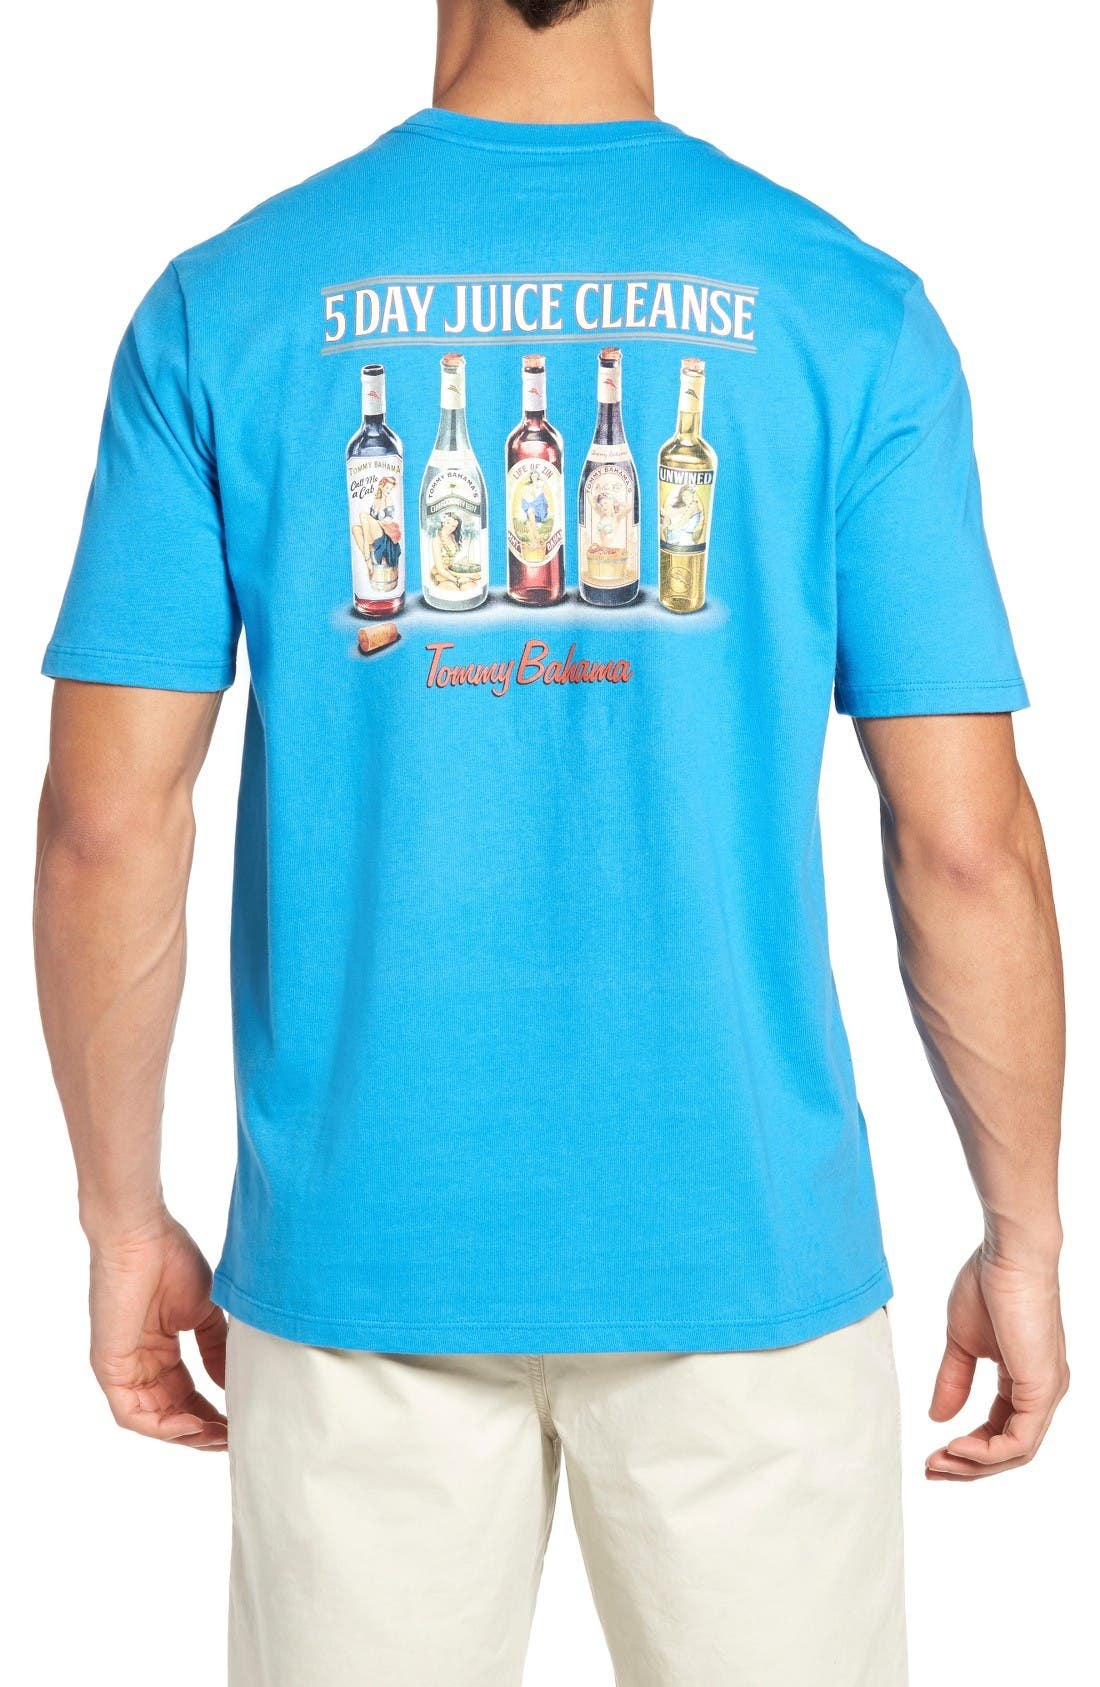 Tommy Bahama Juice Cleanse Original Fit Graphic T-Shirt